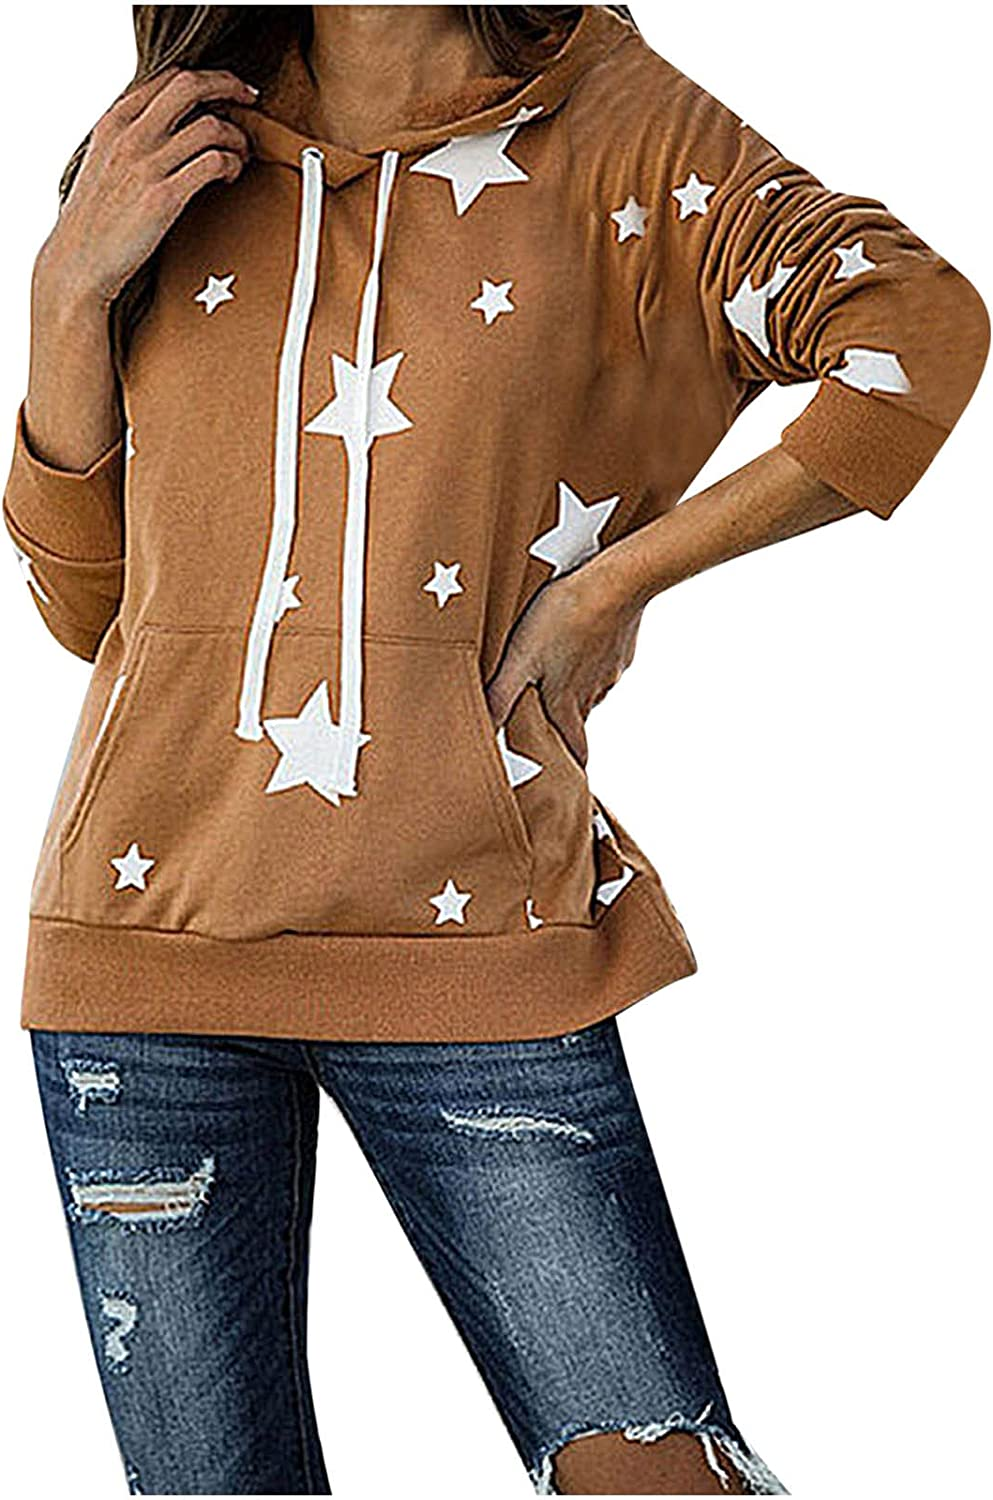 Women's Casual Five-Pointed Star Printing Crewneck Hooded Pullover Tops Long Sleeve Sweater Loose Fashion Sweatshirt